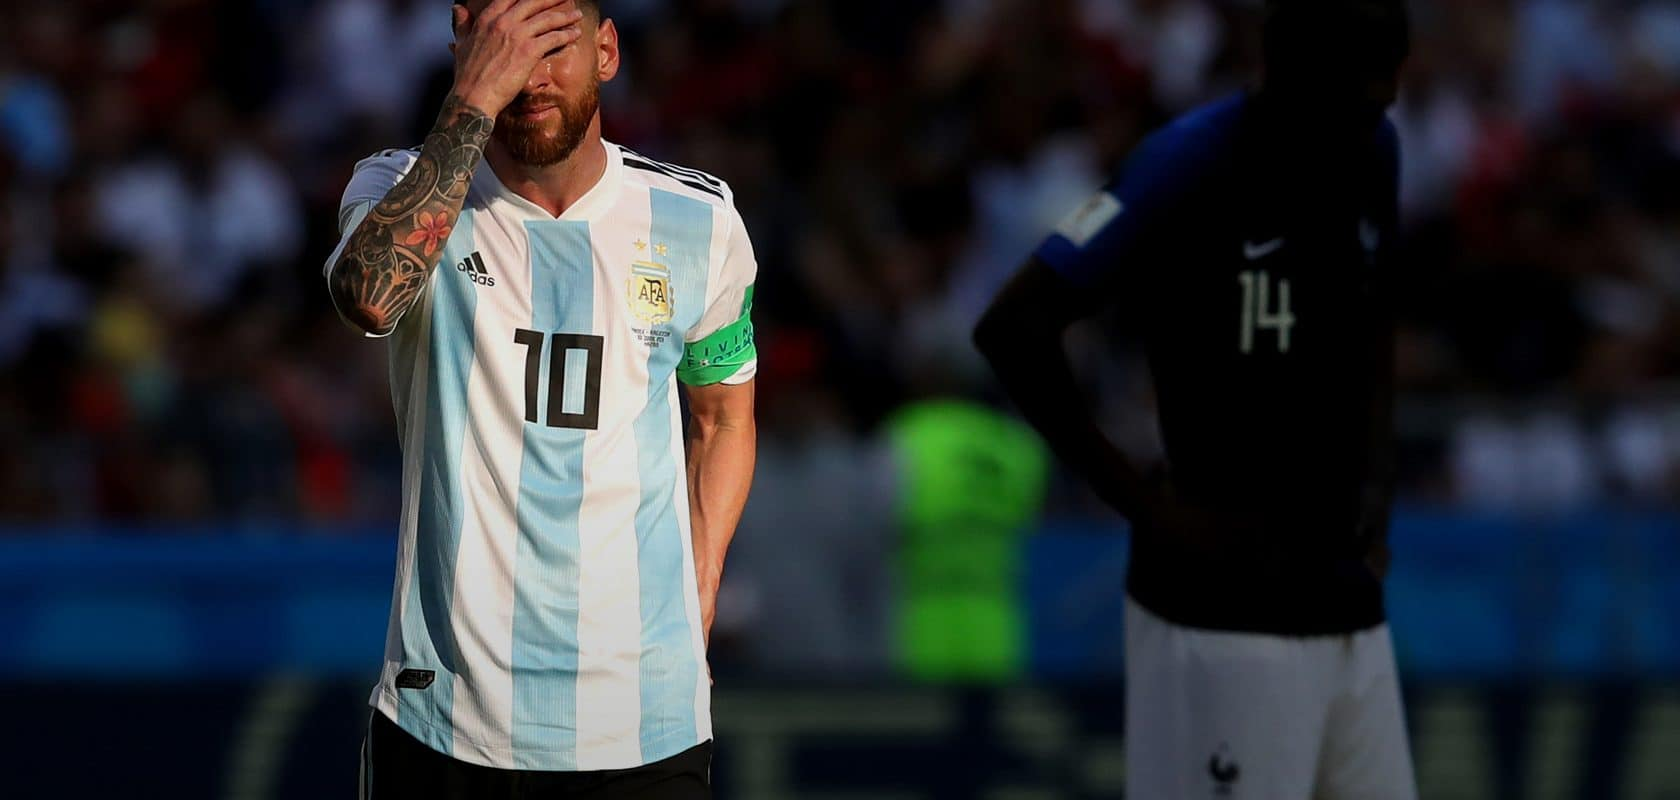 Lionel Messi and Argentina lose to France in the World Cup, 2018.